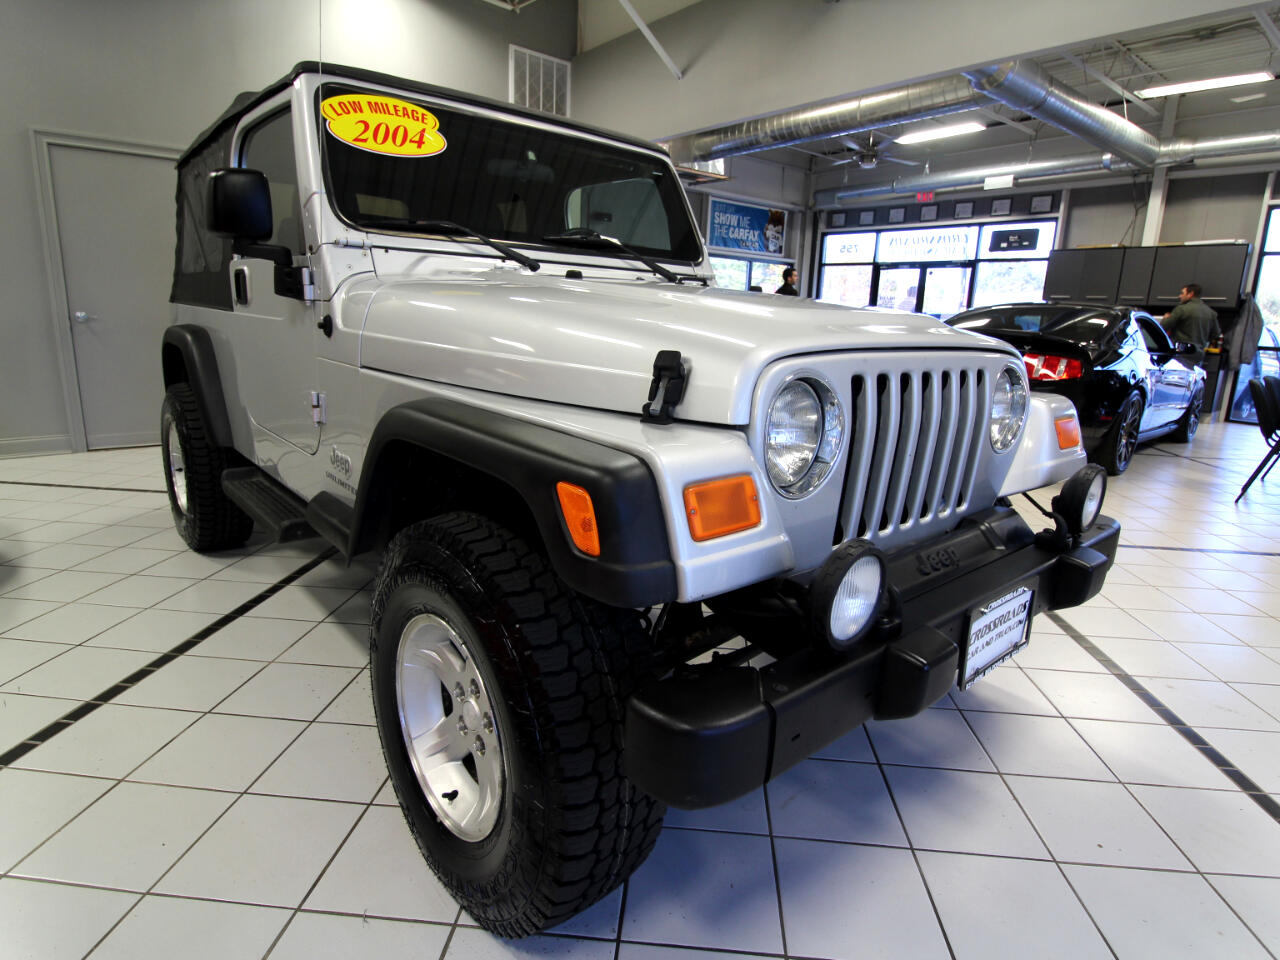 Jeep Wrangler 2dr Unlimited LWB 2004